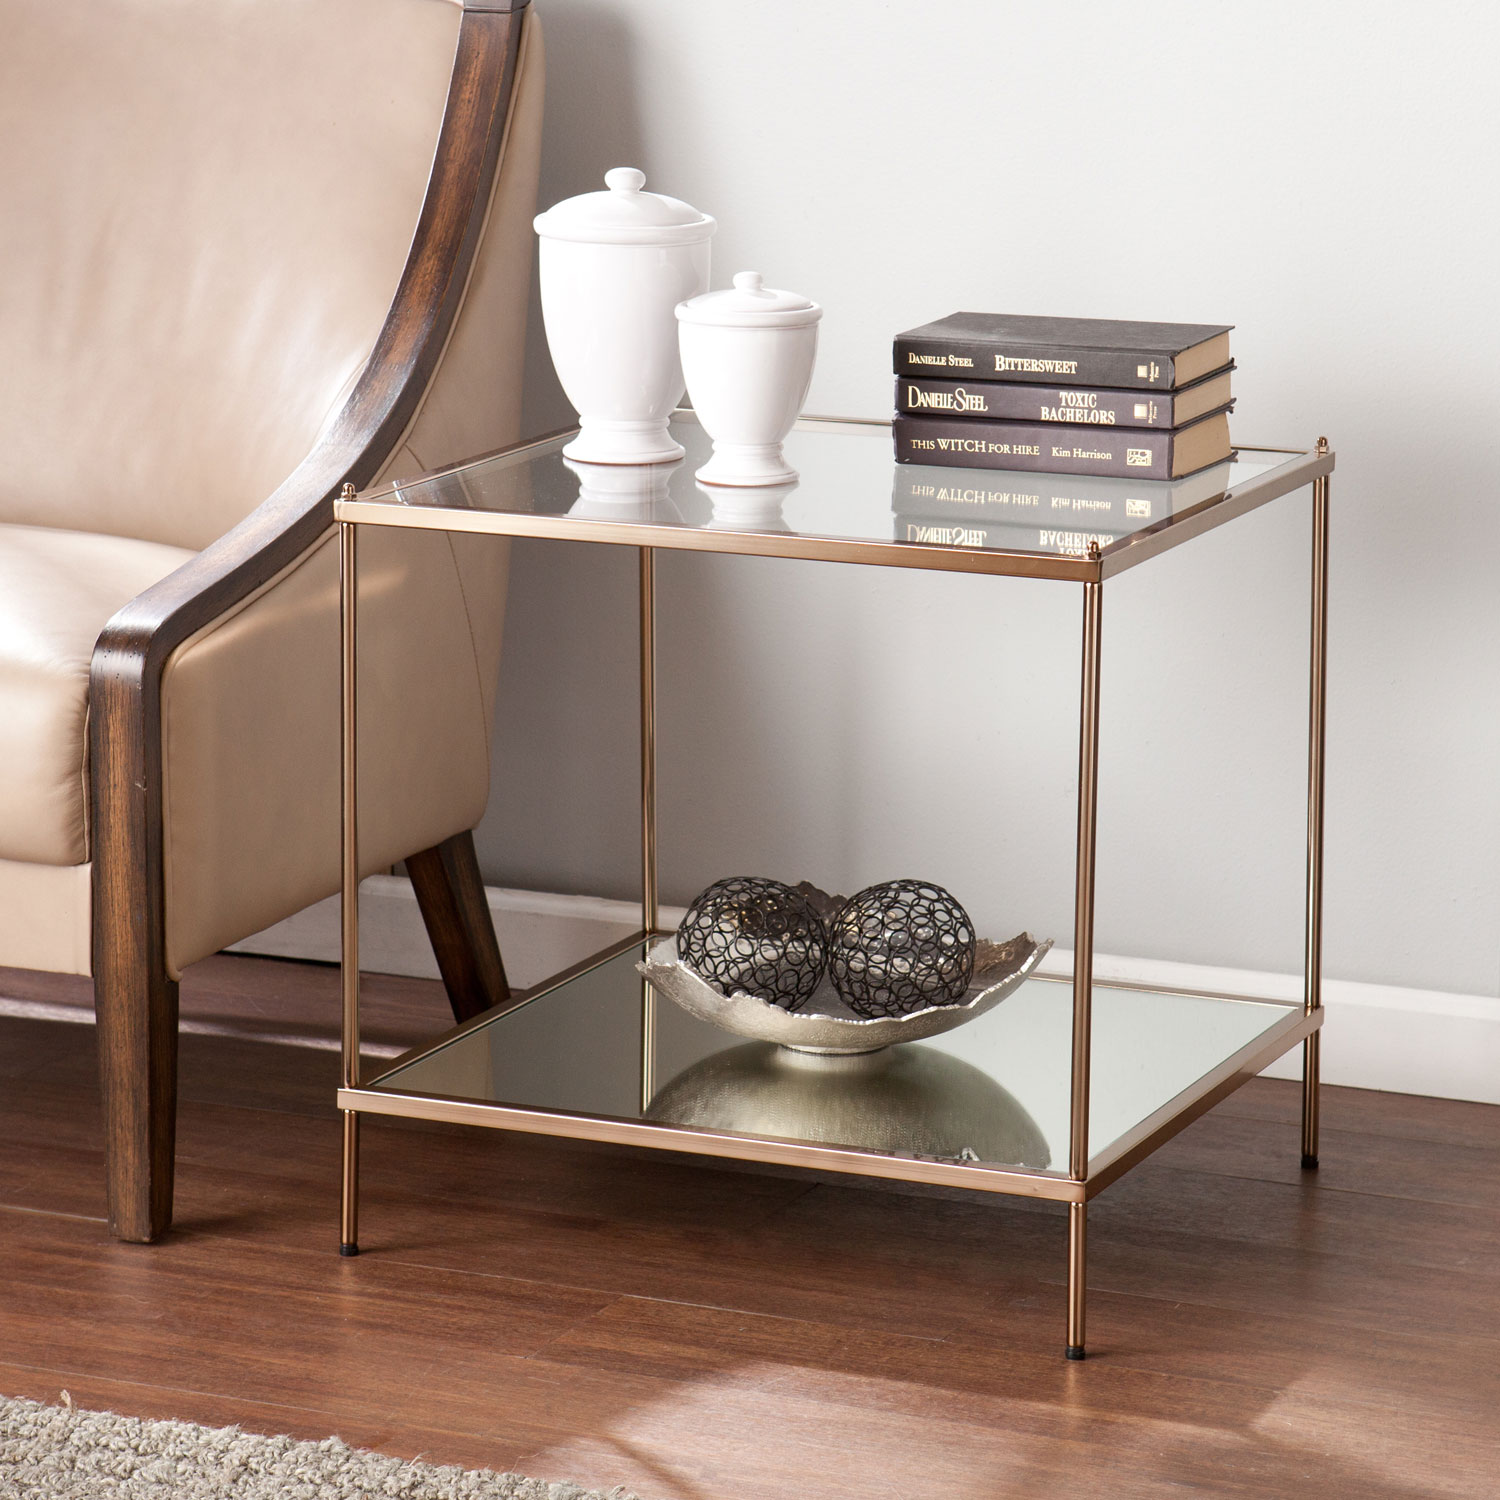 southern enterprises knox end table bellacor accent hover zoom round coffee and tables kmart inch console black pedestal chinese style lamp shades living room ornaments uttermost